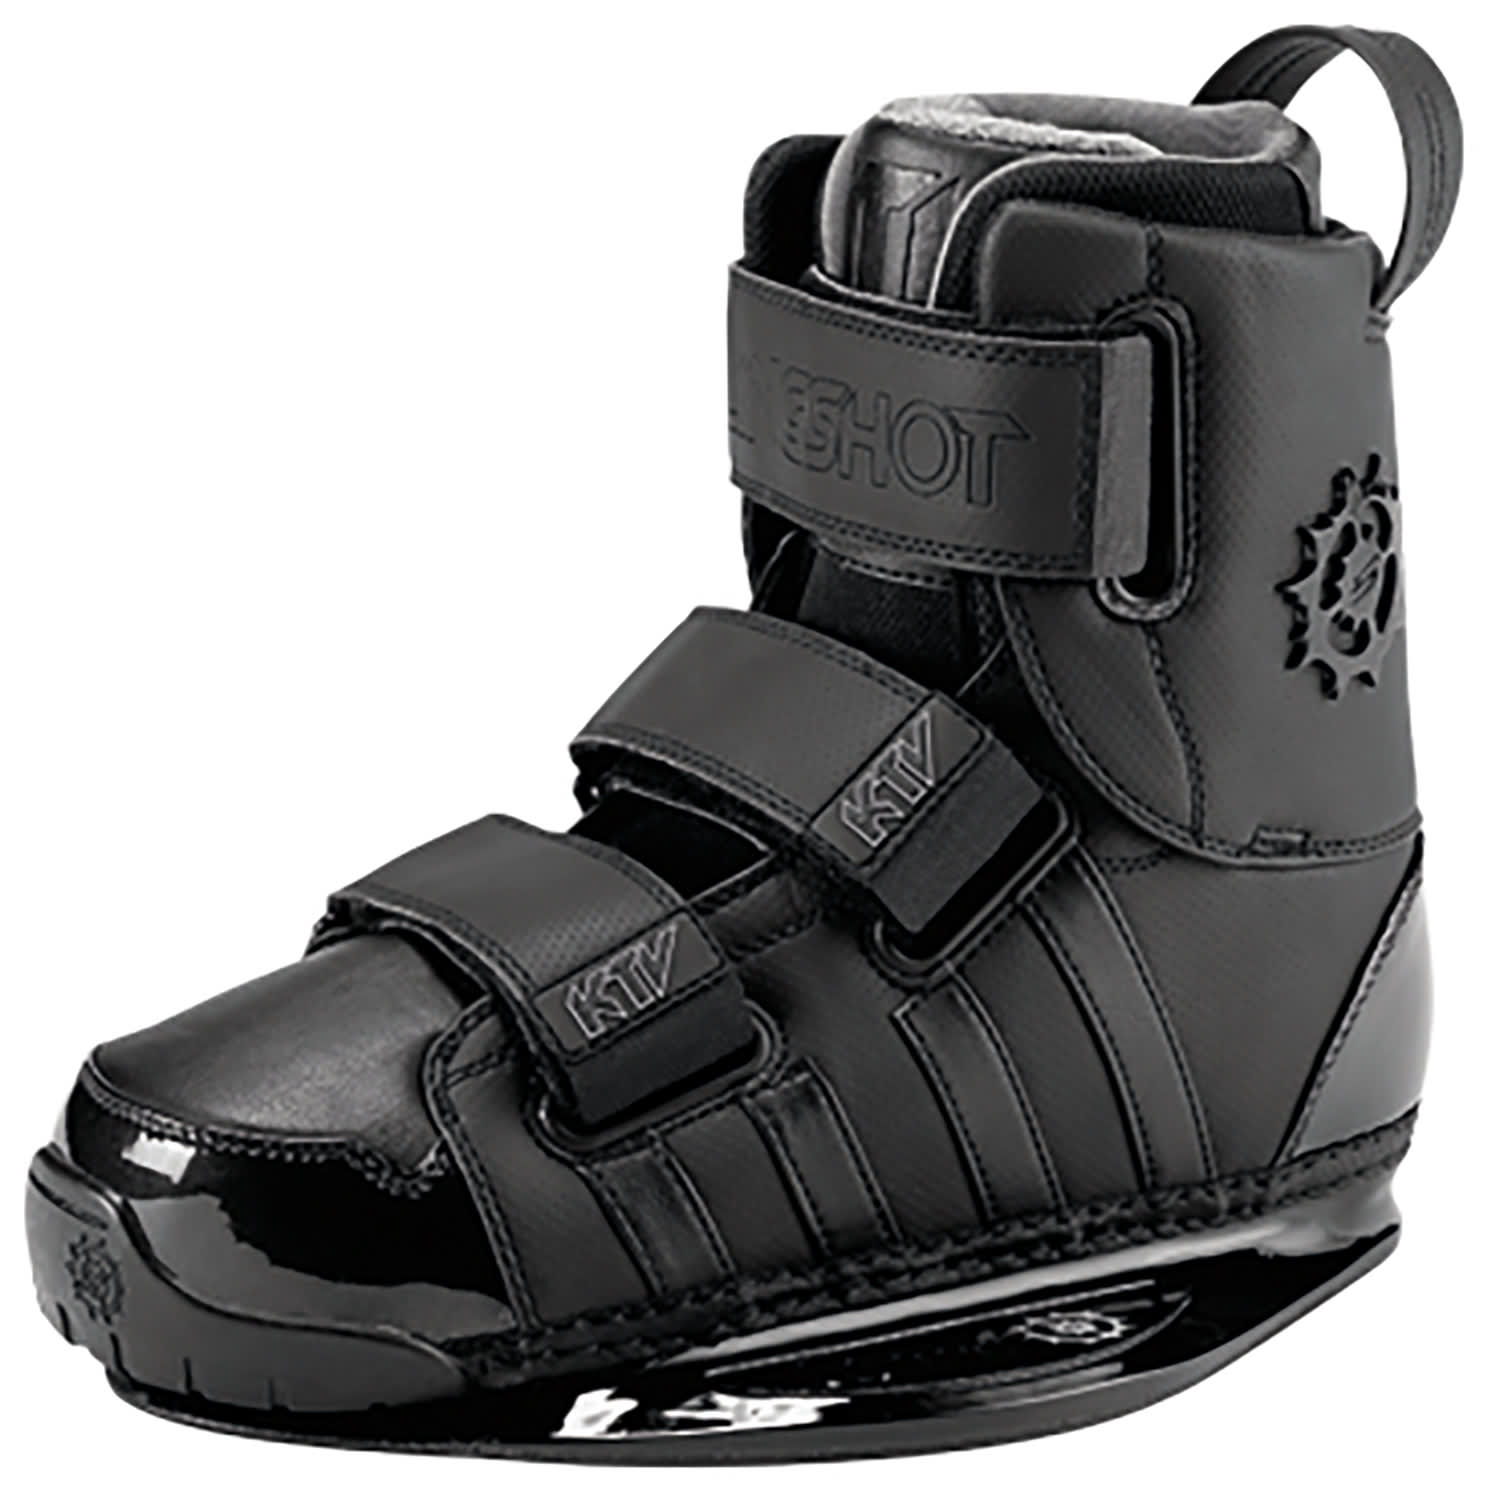 On Sale Slingshot KTV Wakeboard Bindings Up To 50% Off